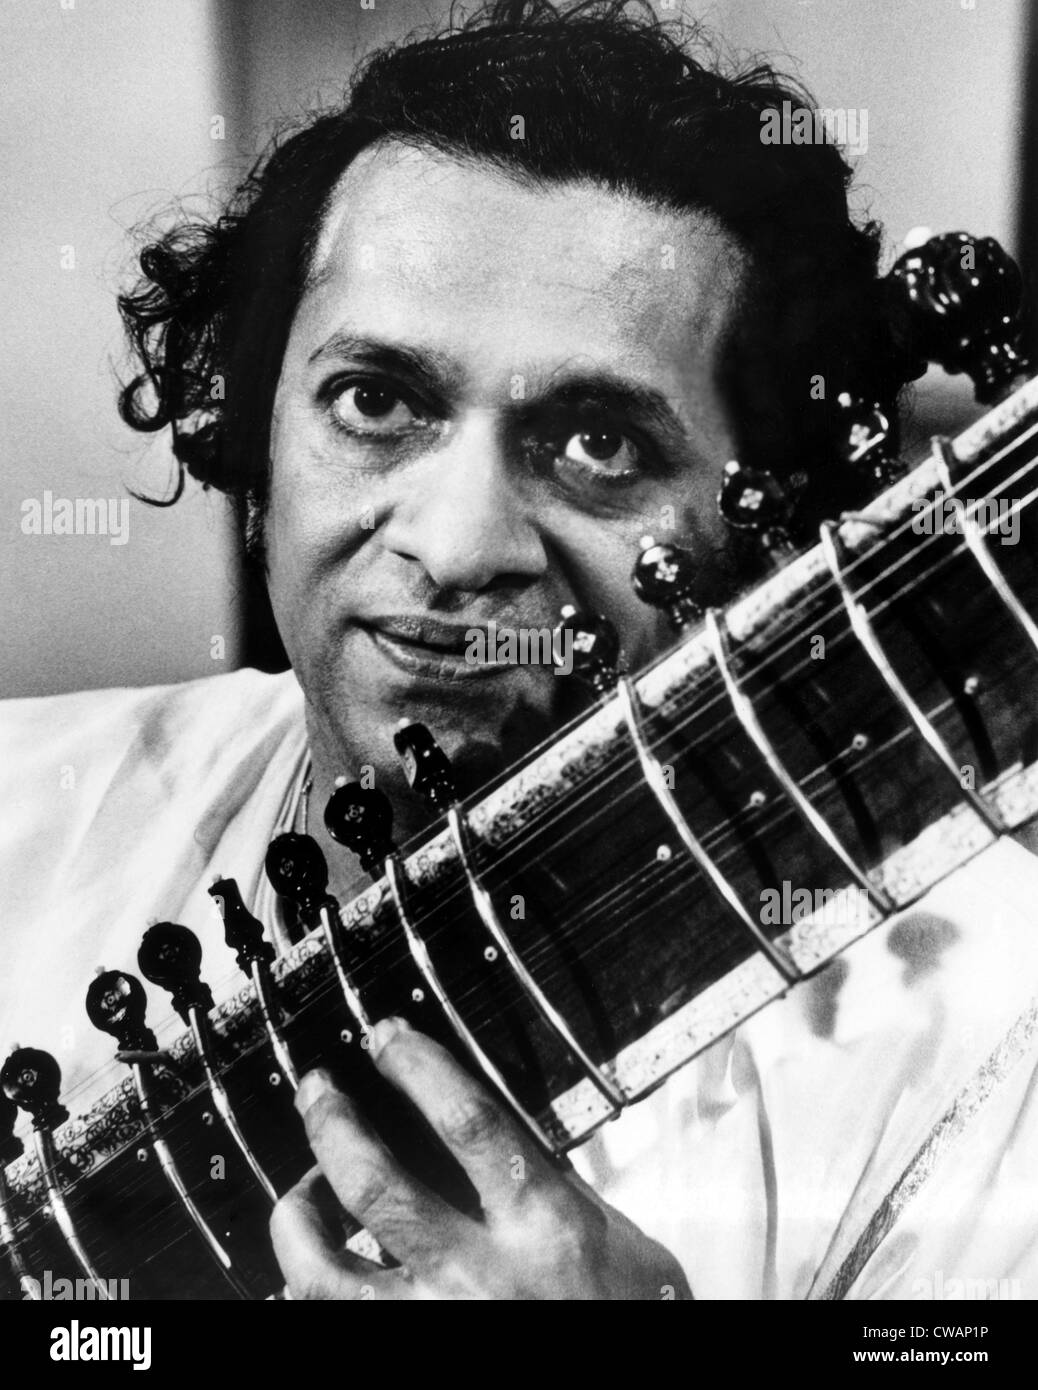 Ravi Shankar, musicien, compositeur, interprète et érudit, portrait, 1960. Avec la permission de la CSU : Photo Stock